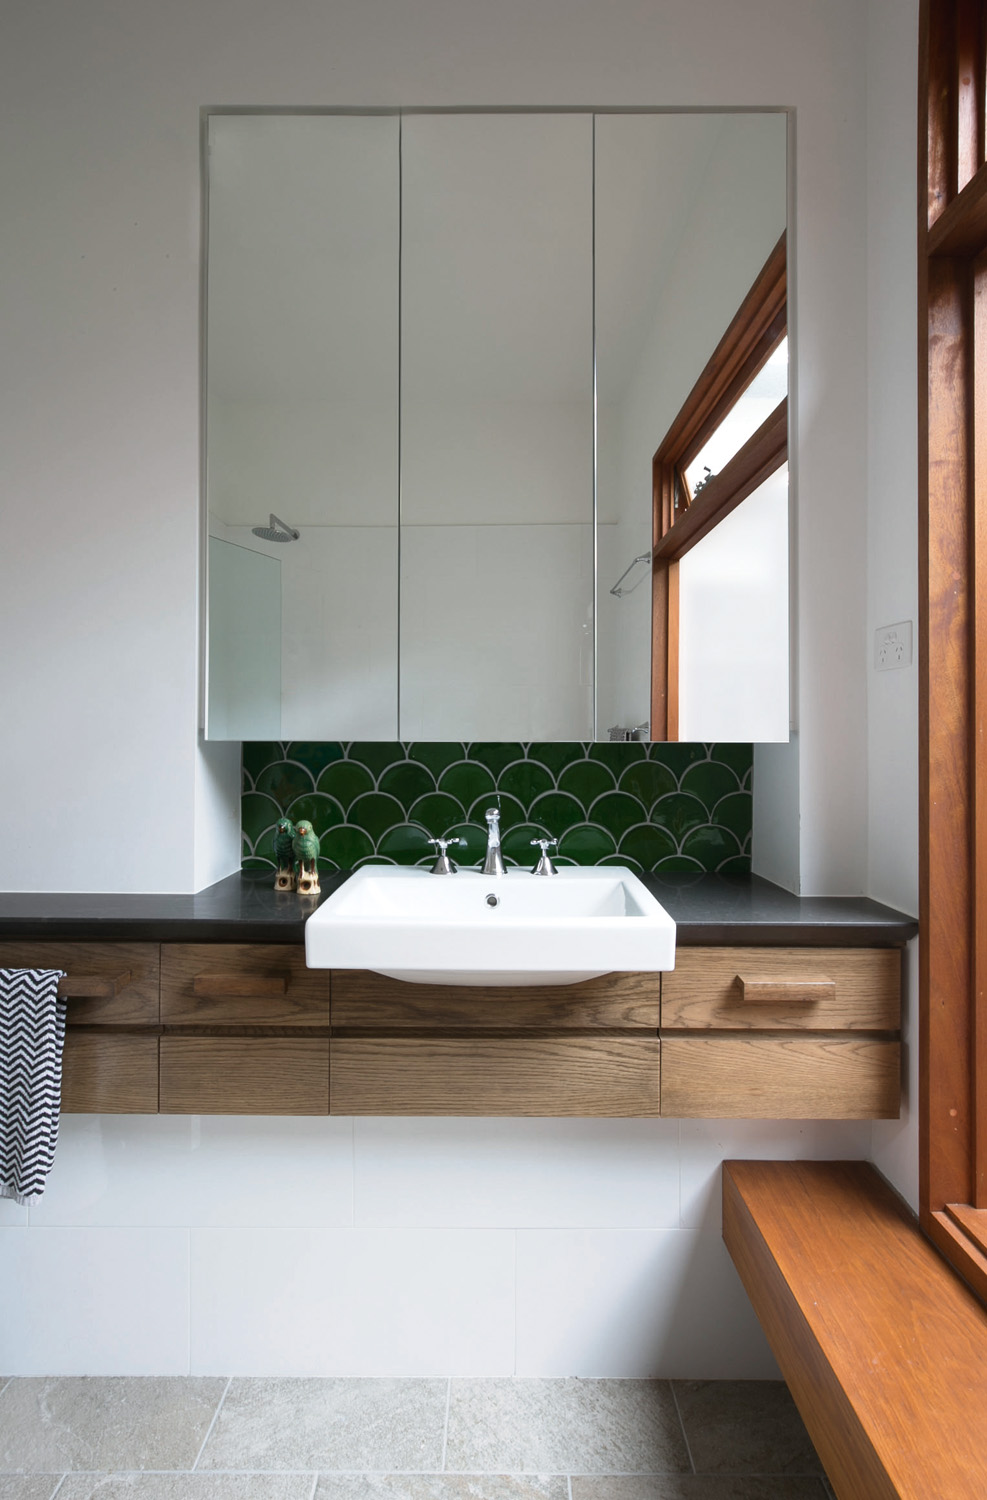 Green fish scale tiles bring a natural aspect to the bathroom